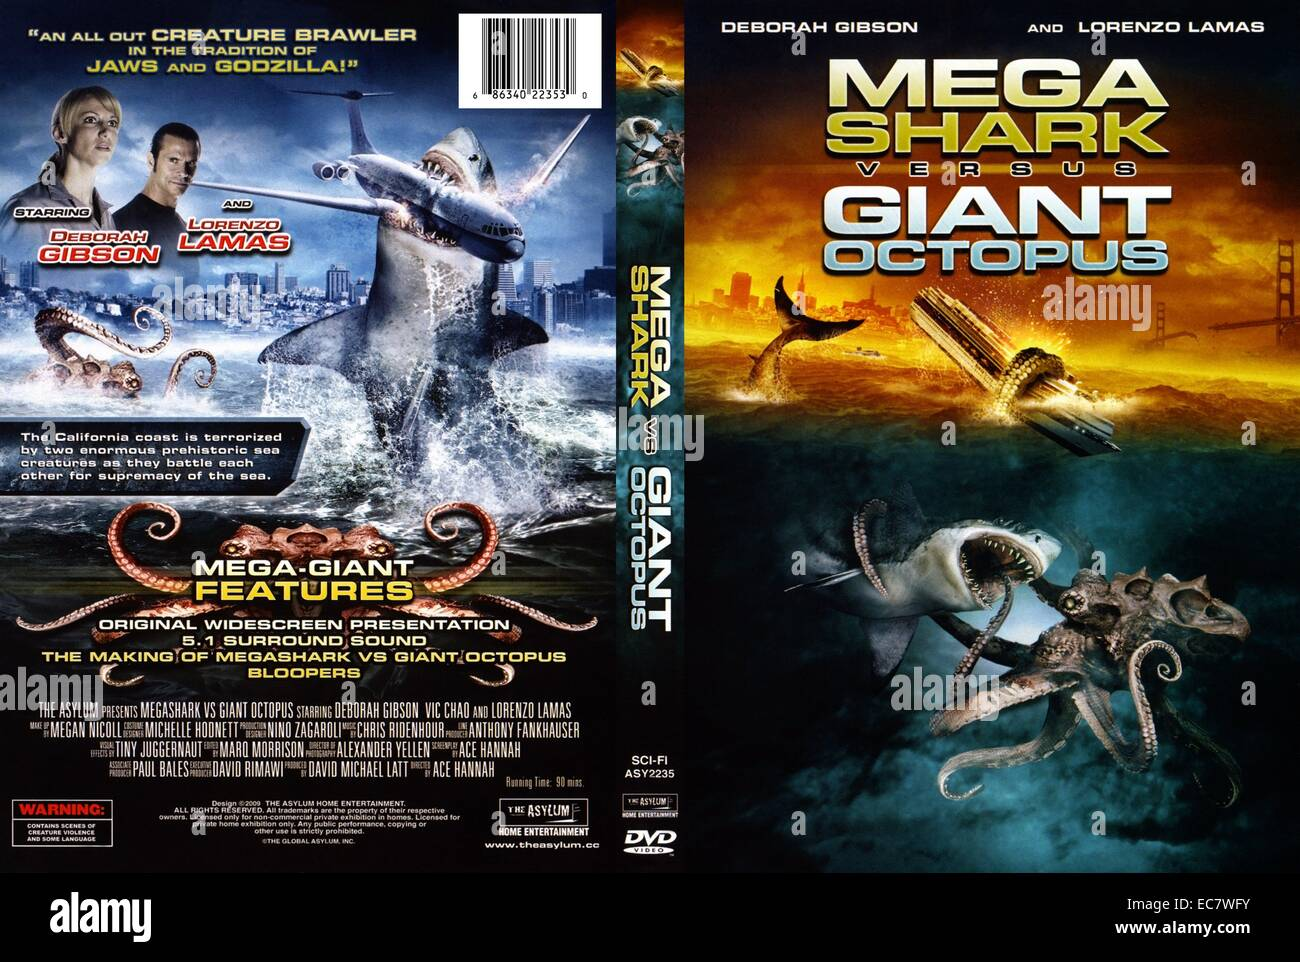 Mega Shark Versus Giant Octopus is a monster film by The Asylum, released 2009 - Stock Image